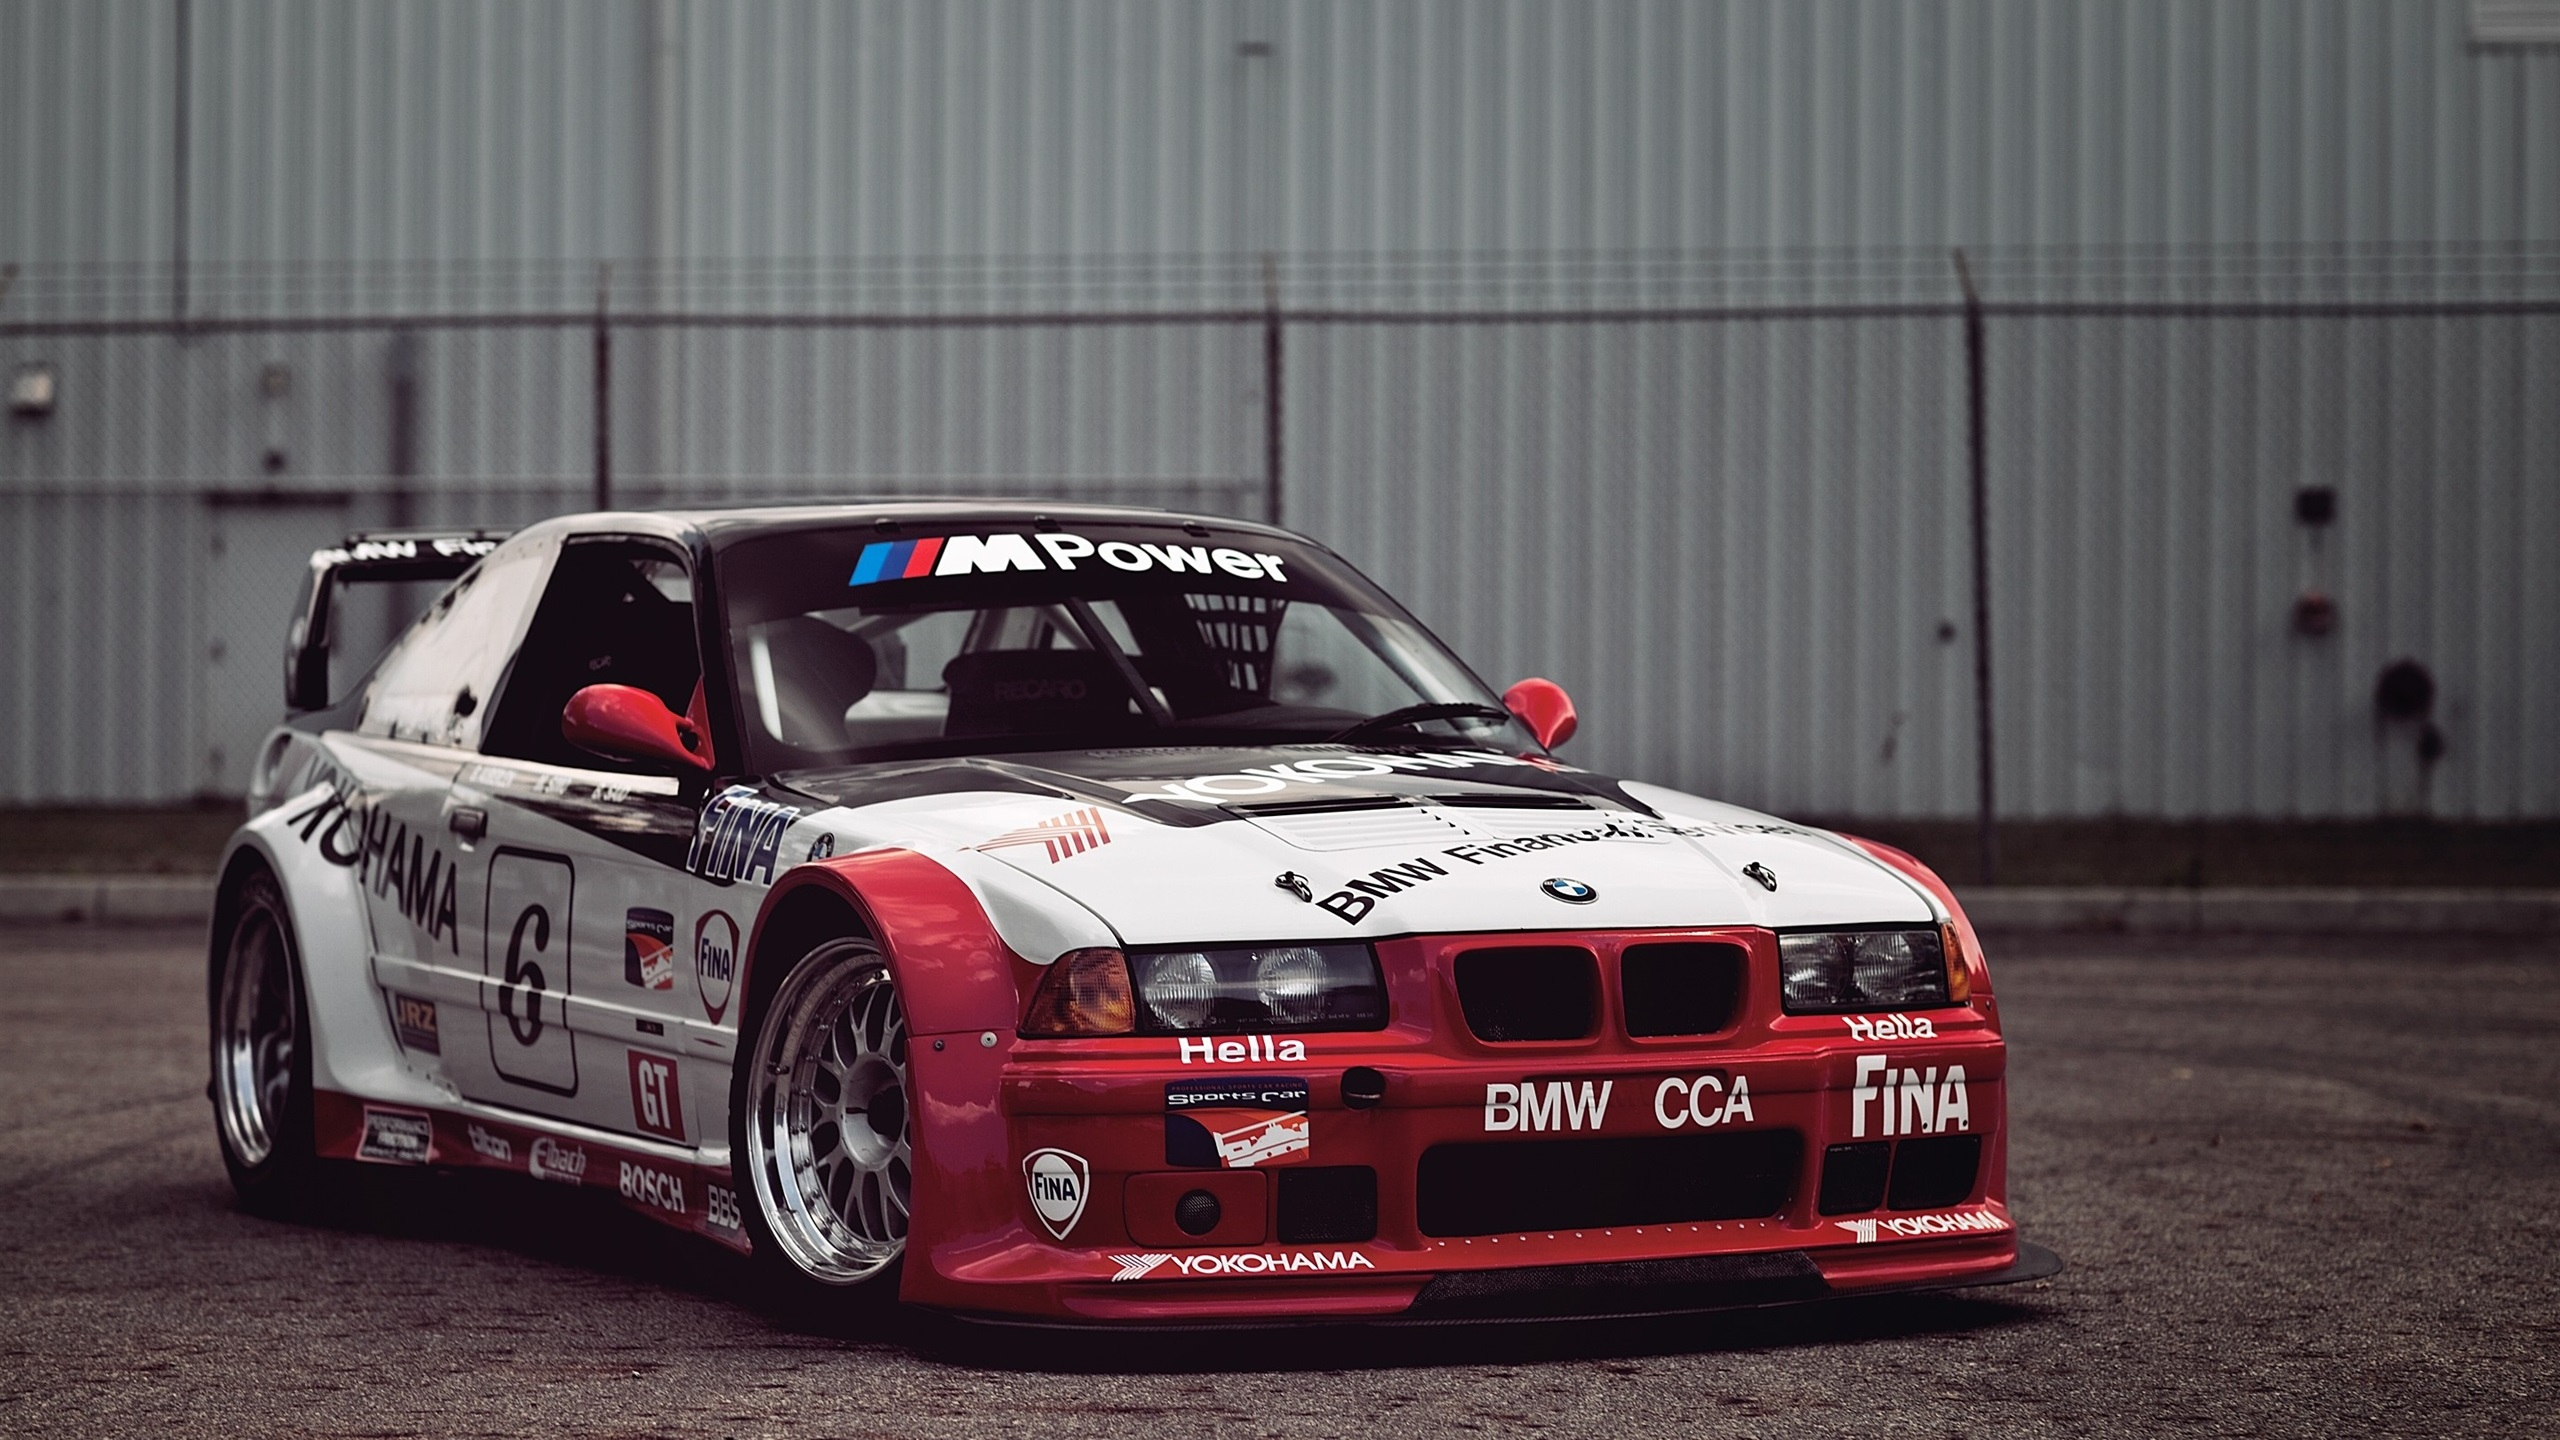 Wallpaper Bmw Race Car White And Red 2560x1600 Hd Picture Image